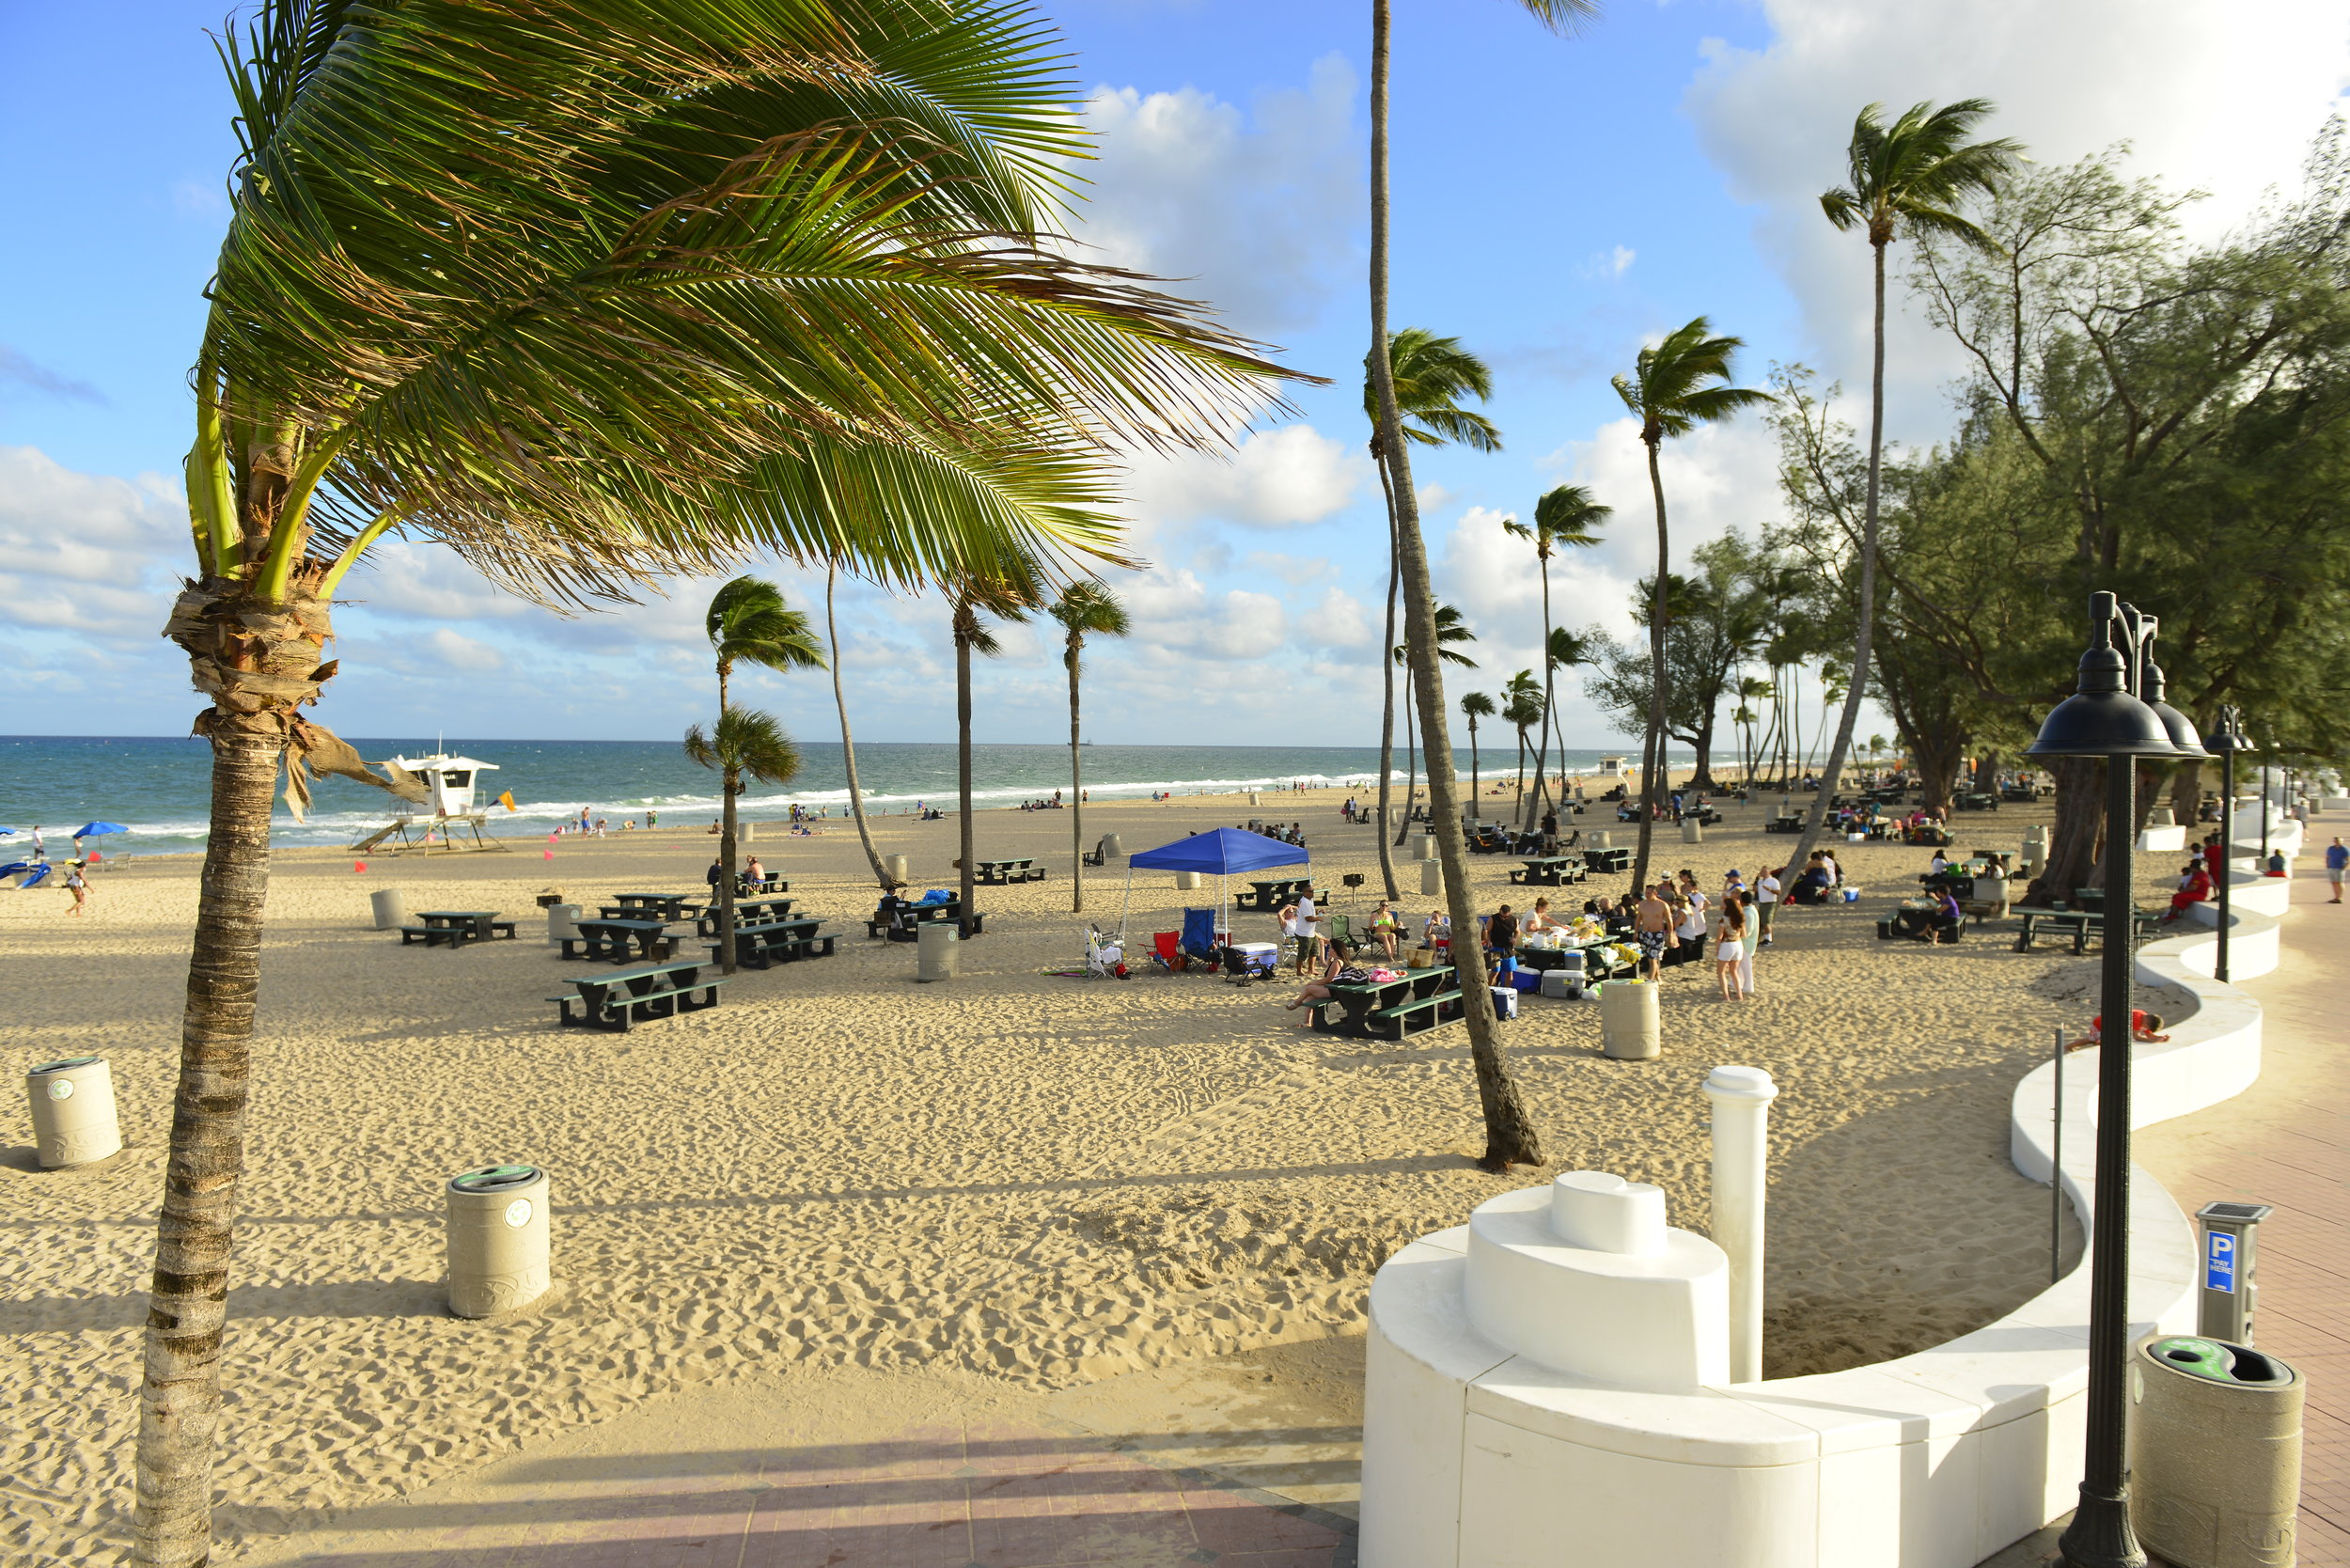 my escape from it all - fresh air. this is about 1.5 miles south of me on fort lauderdale beach.